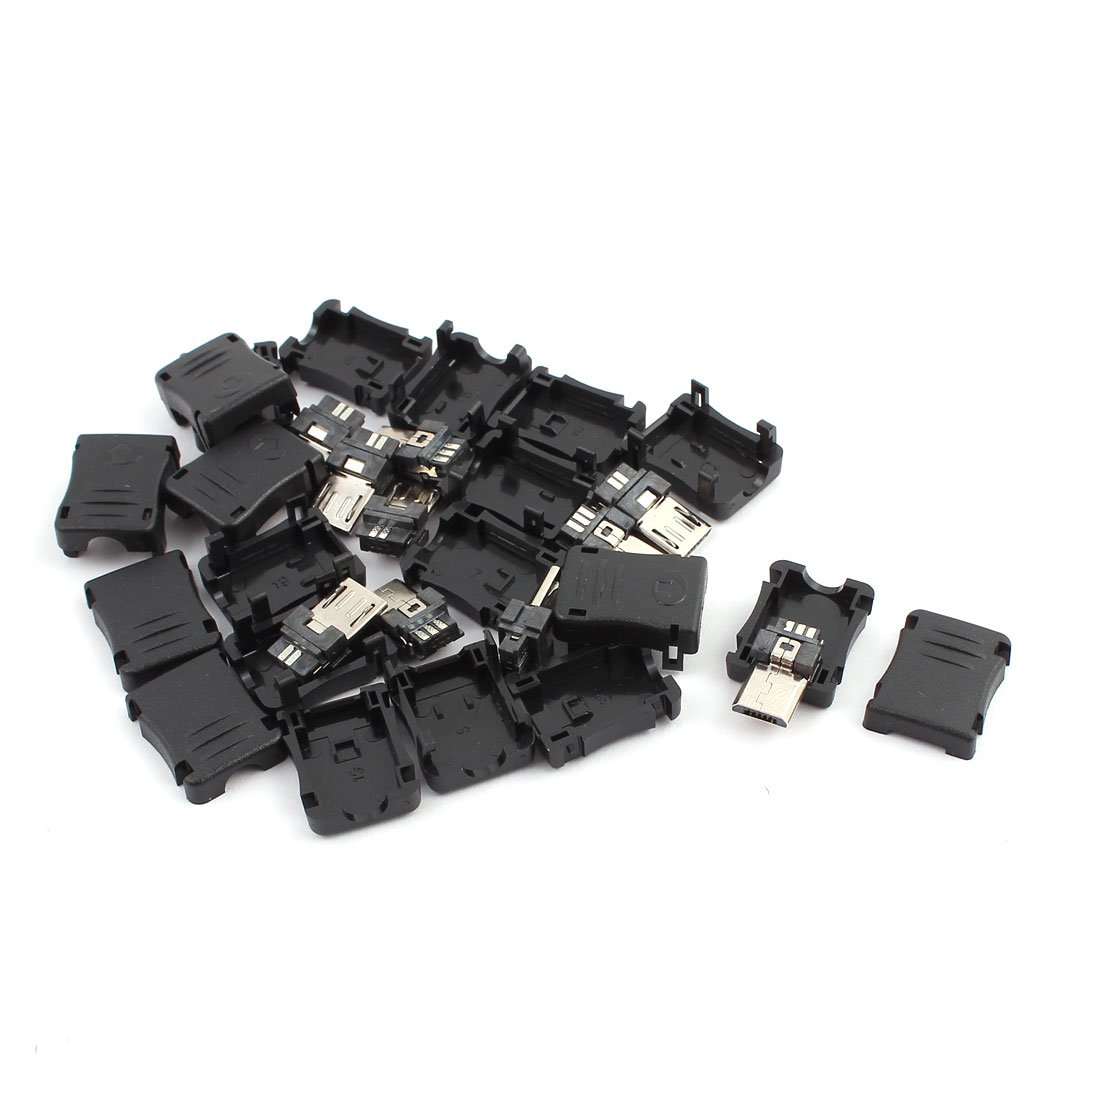 uxcell 10PCS 5-Pin Micro USB Male Connector w Plastic Cover for DIY